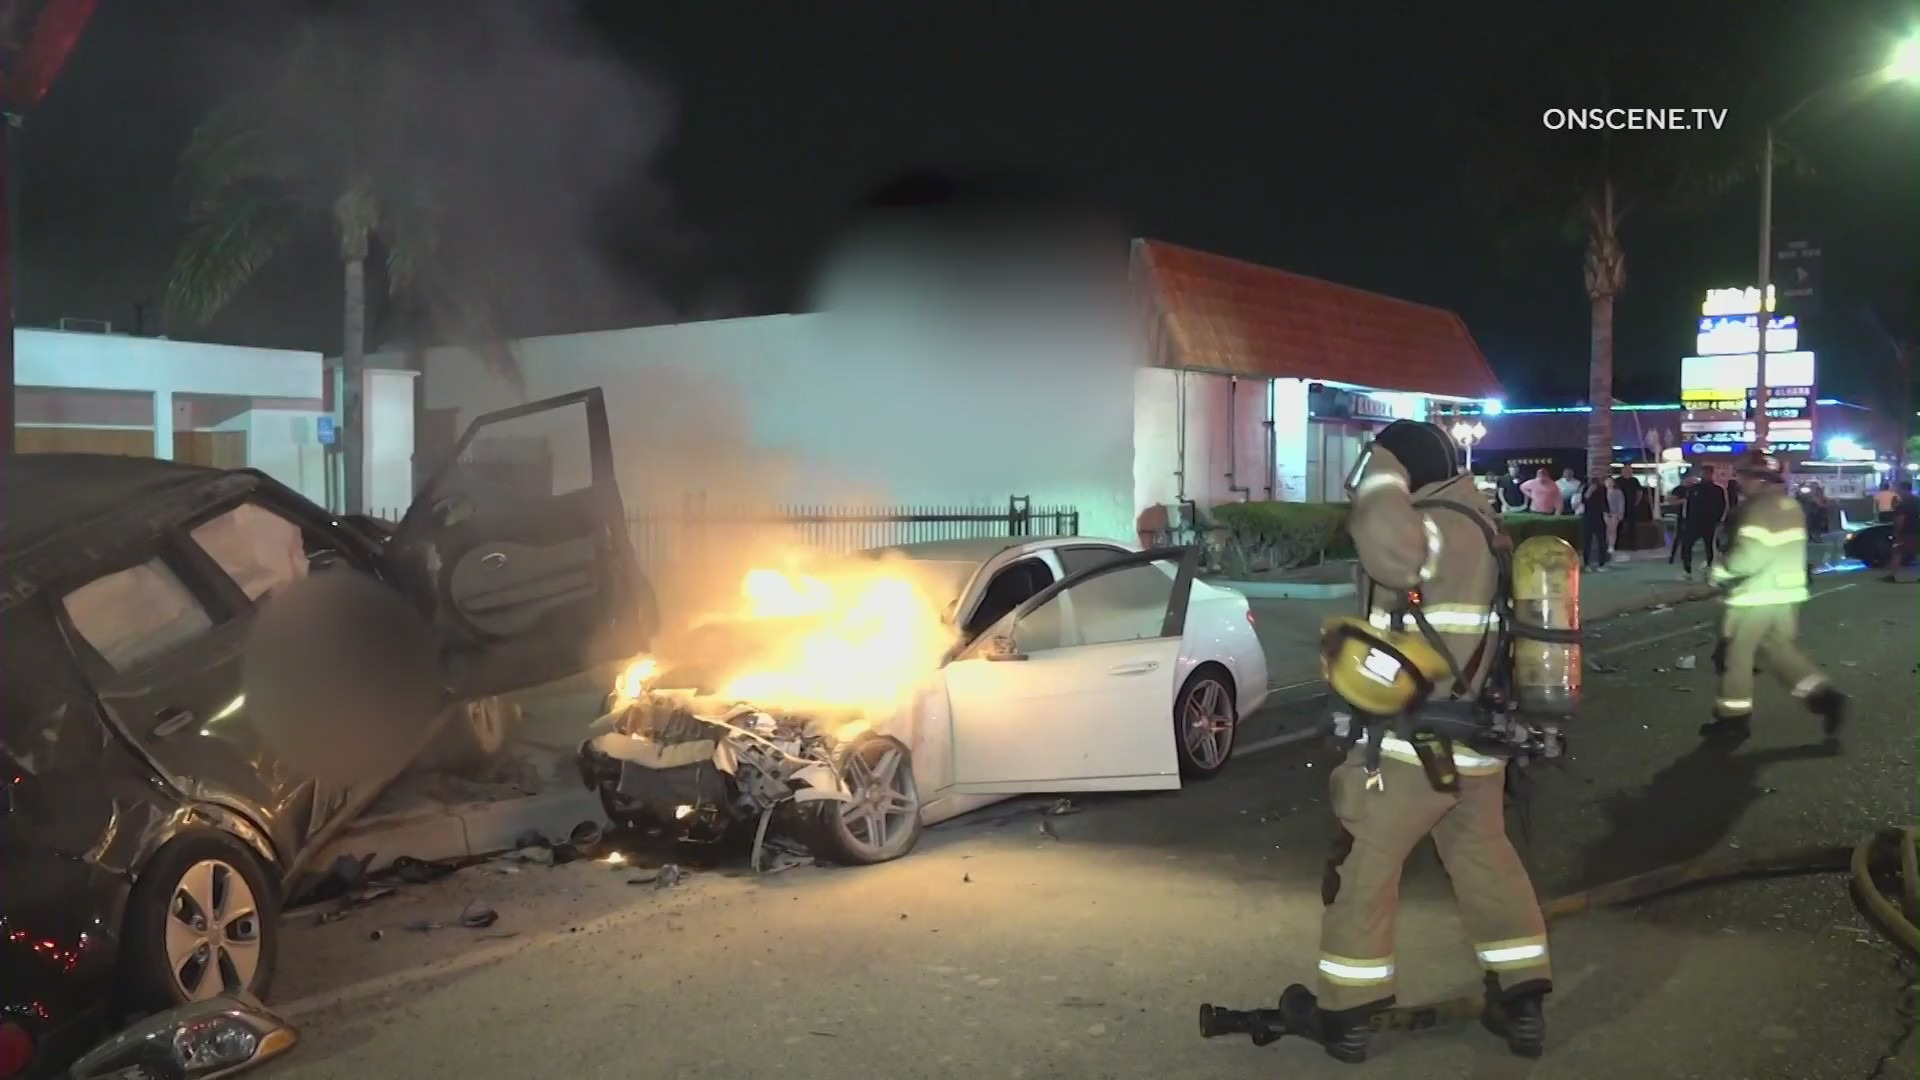 Emergency crews respond to a fatal hit-and-run crash in Anaheim on May 4, 2021. (OnScene.TV)